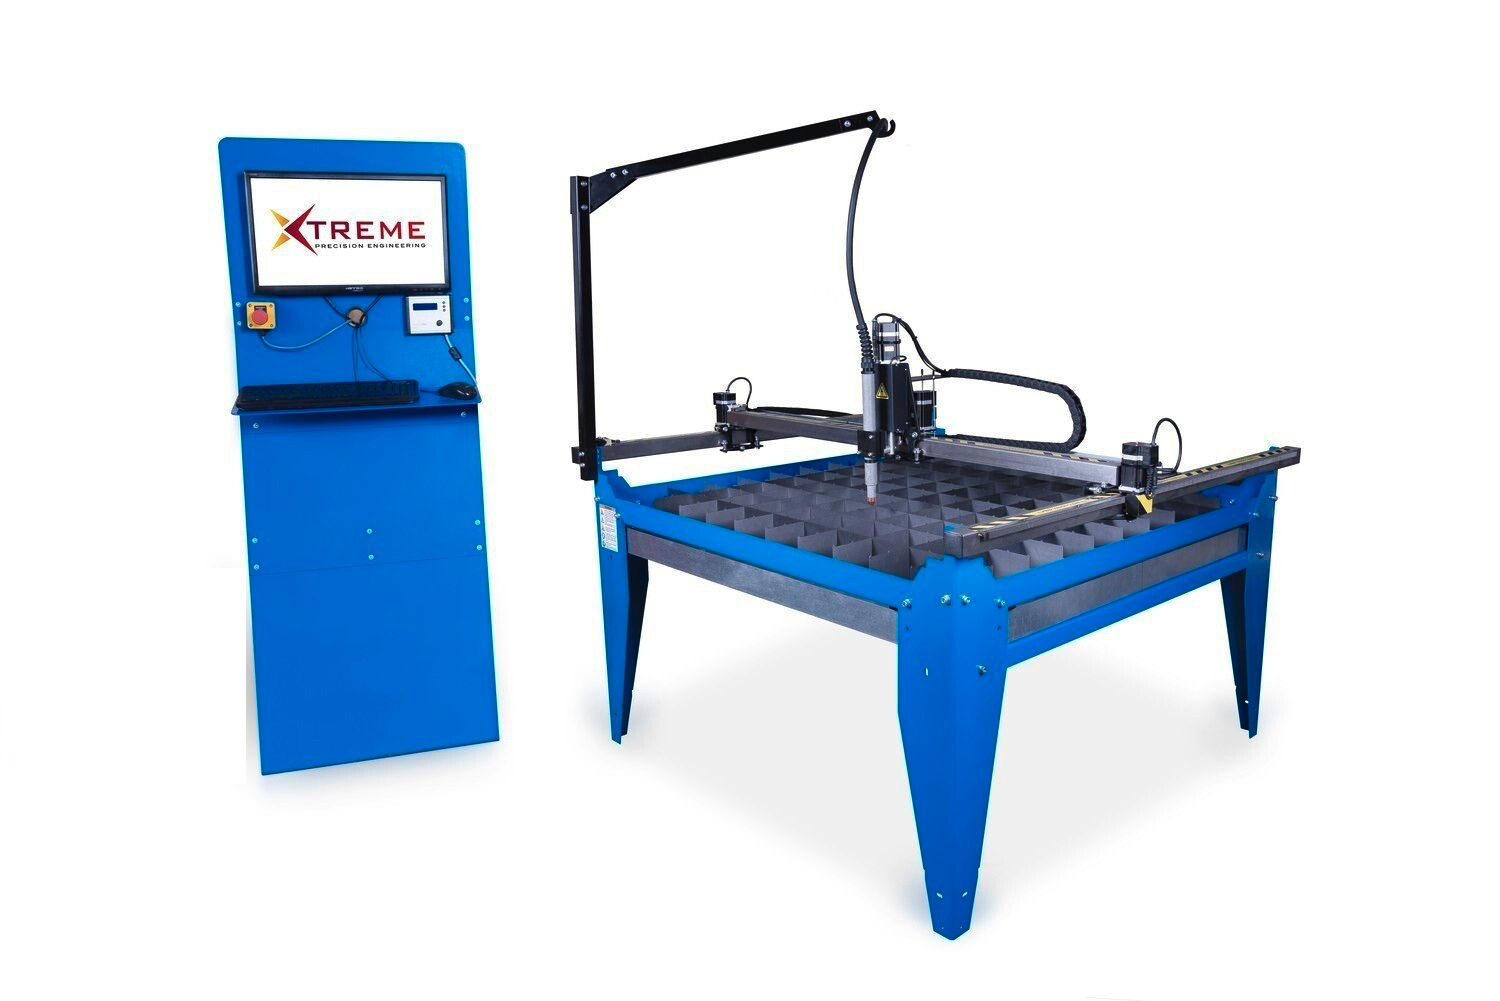 4x4 CNC Plasma Cutting Table Kit